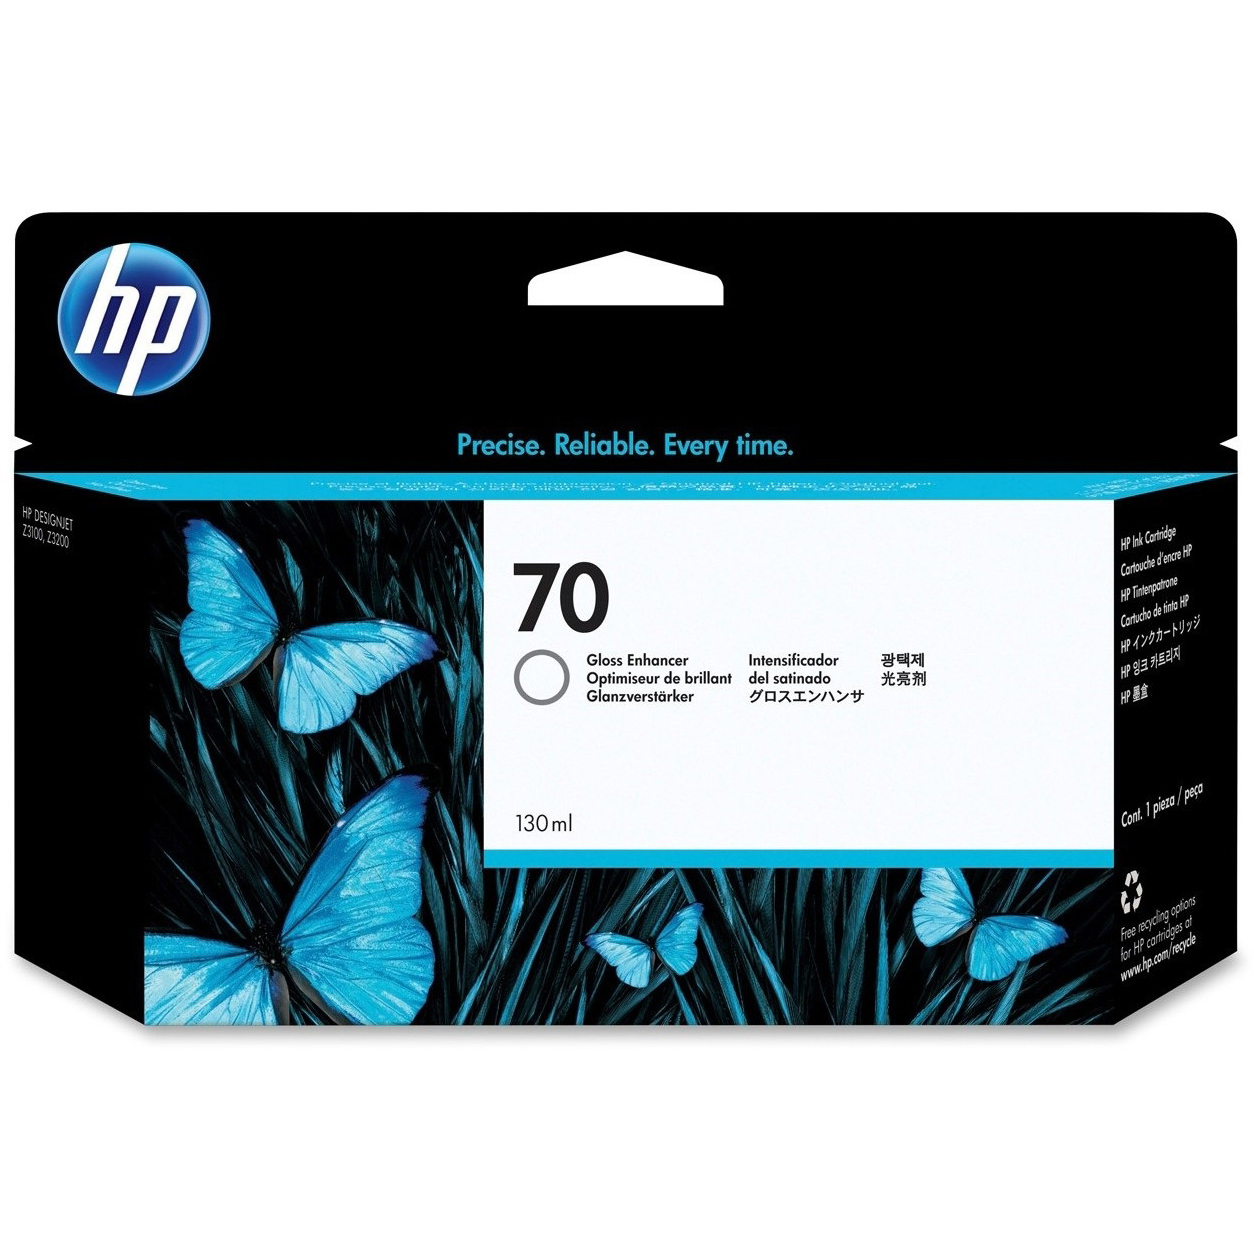 Original HP 70 Gloss Enhancer Ink Cartridge (C9459A)